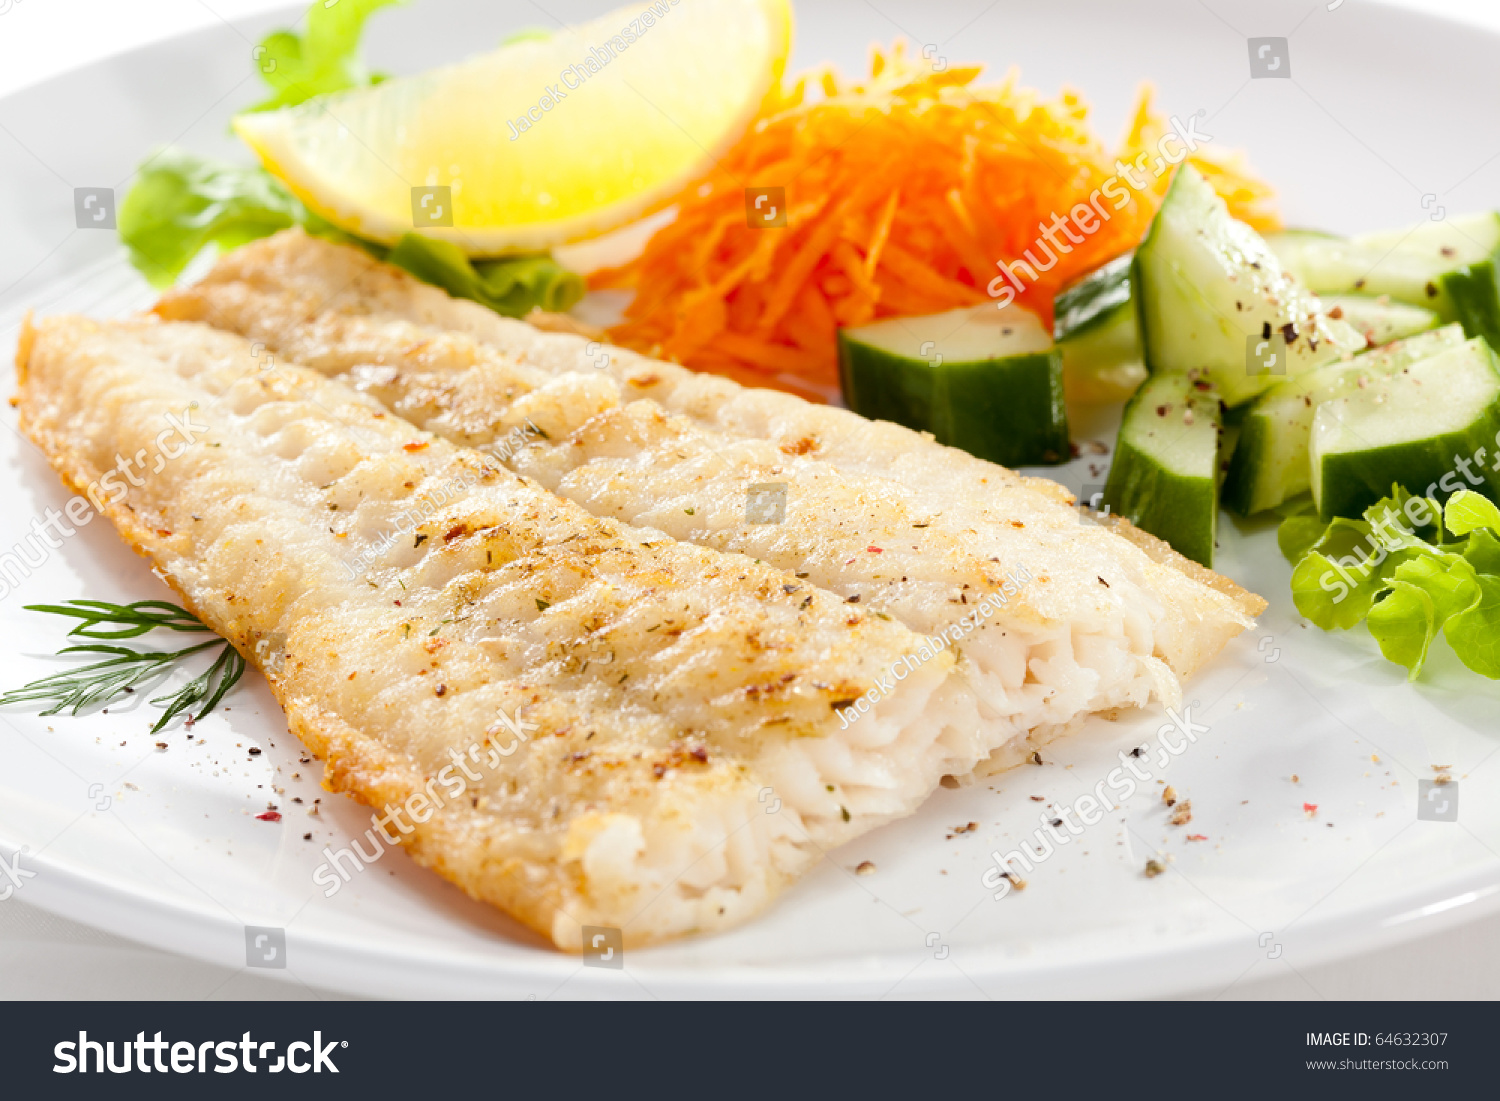 Fish dish fried fish fillet vegetables stock photo for What to eat with fried fish